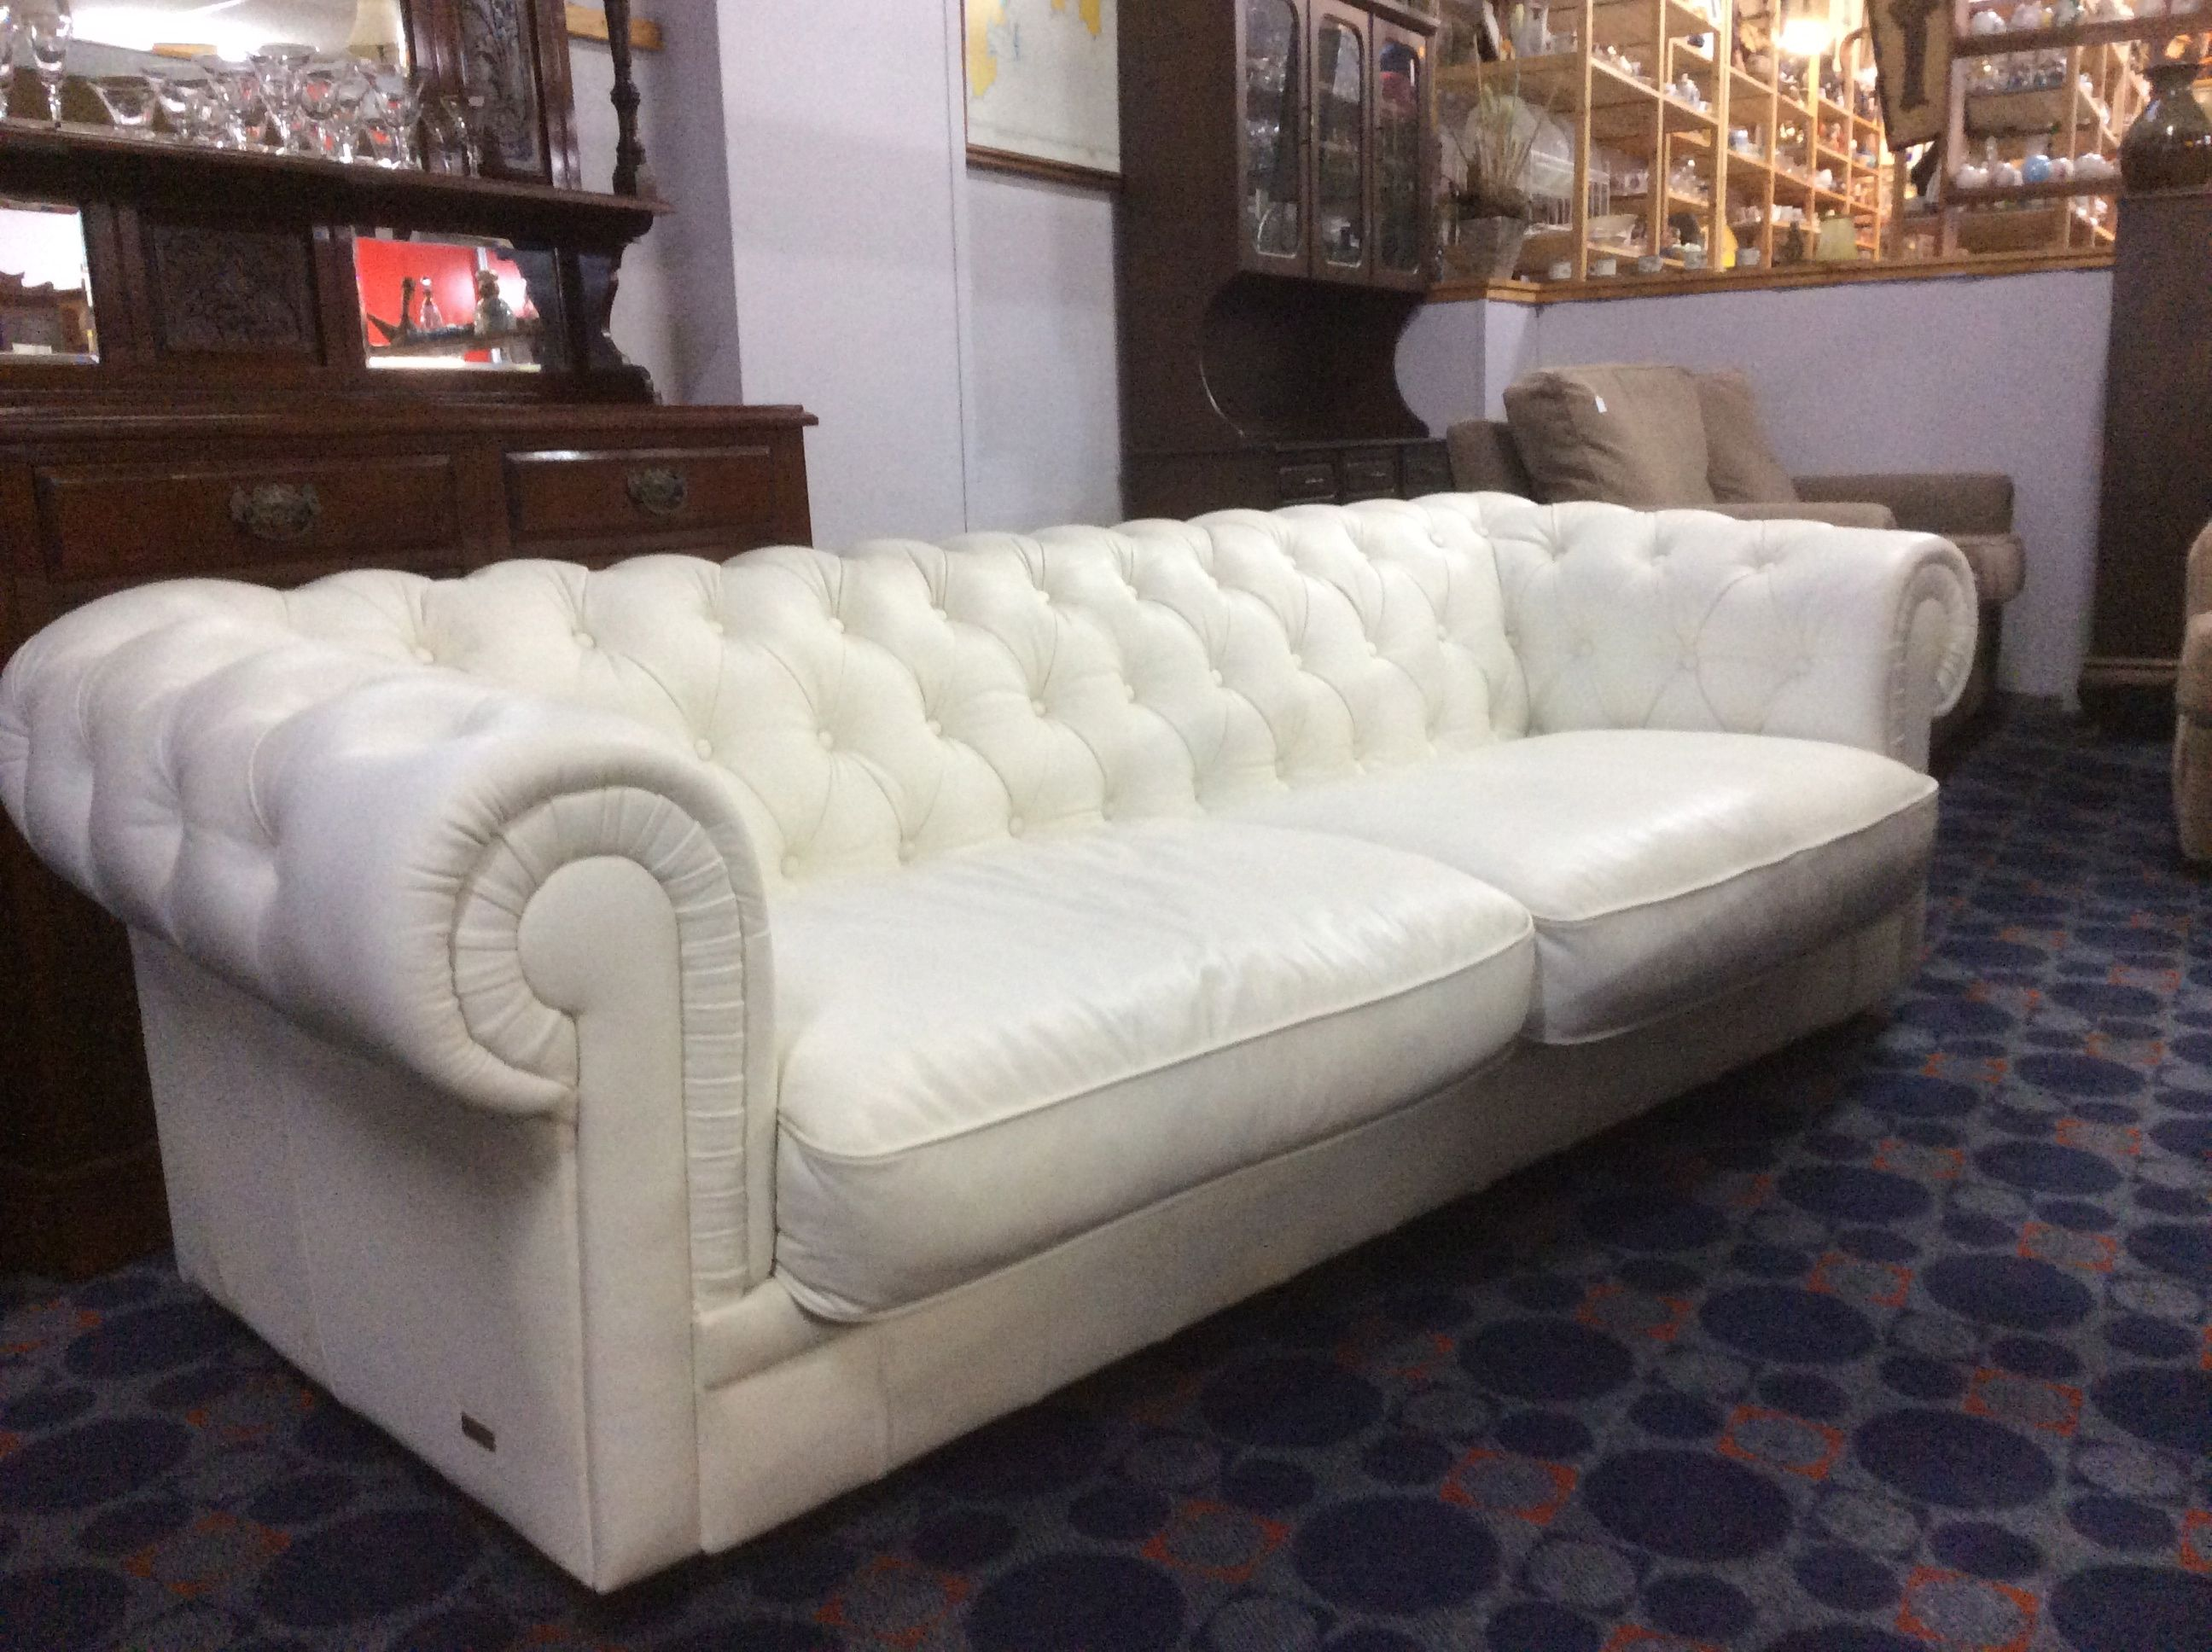 Chesterfield Sessel Weiss Chesterfield Sofa In Modernem Weiß Leder Sofa Weißes Leder